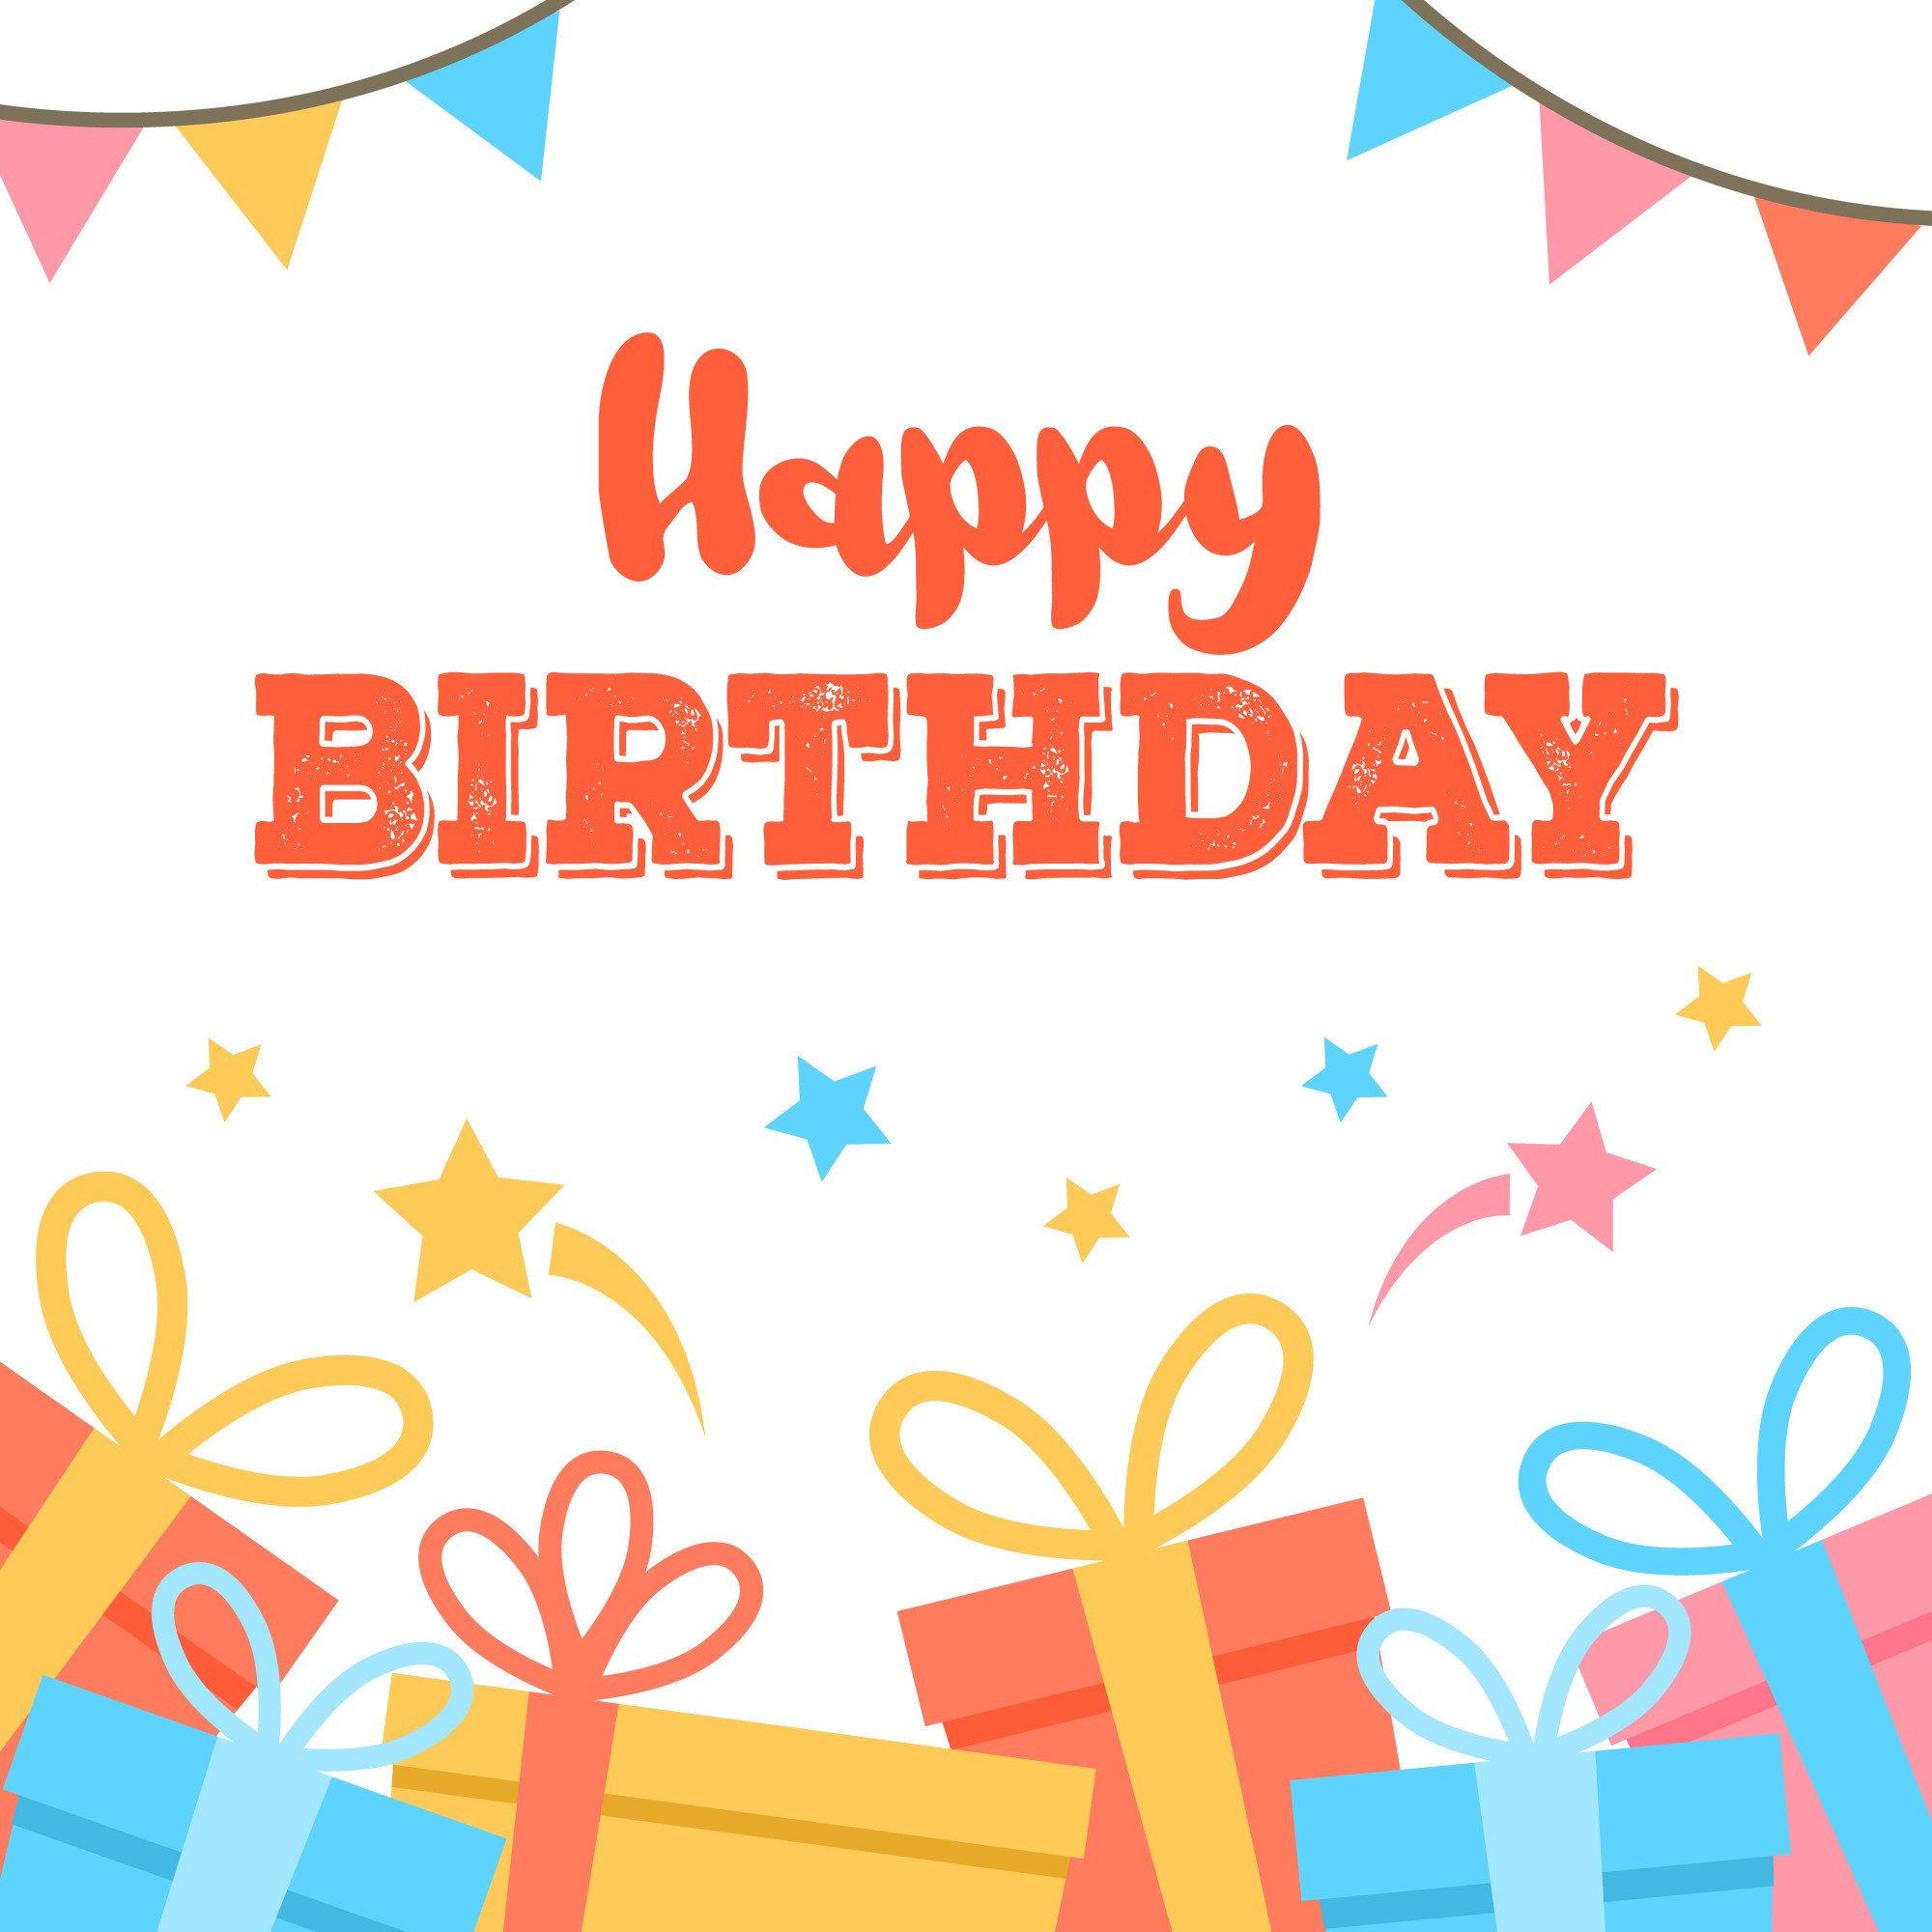 Happy Birthday card. Colorful flags garland composition.